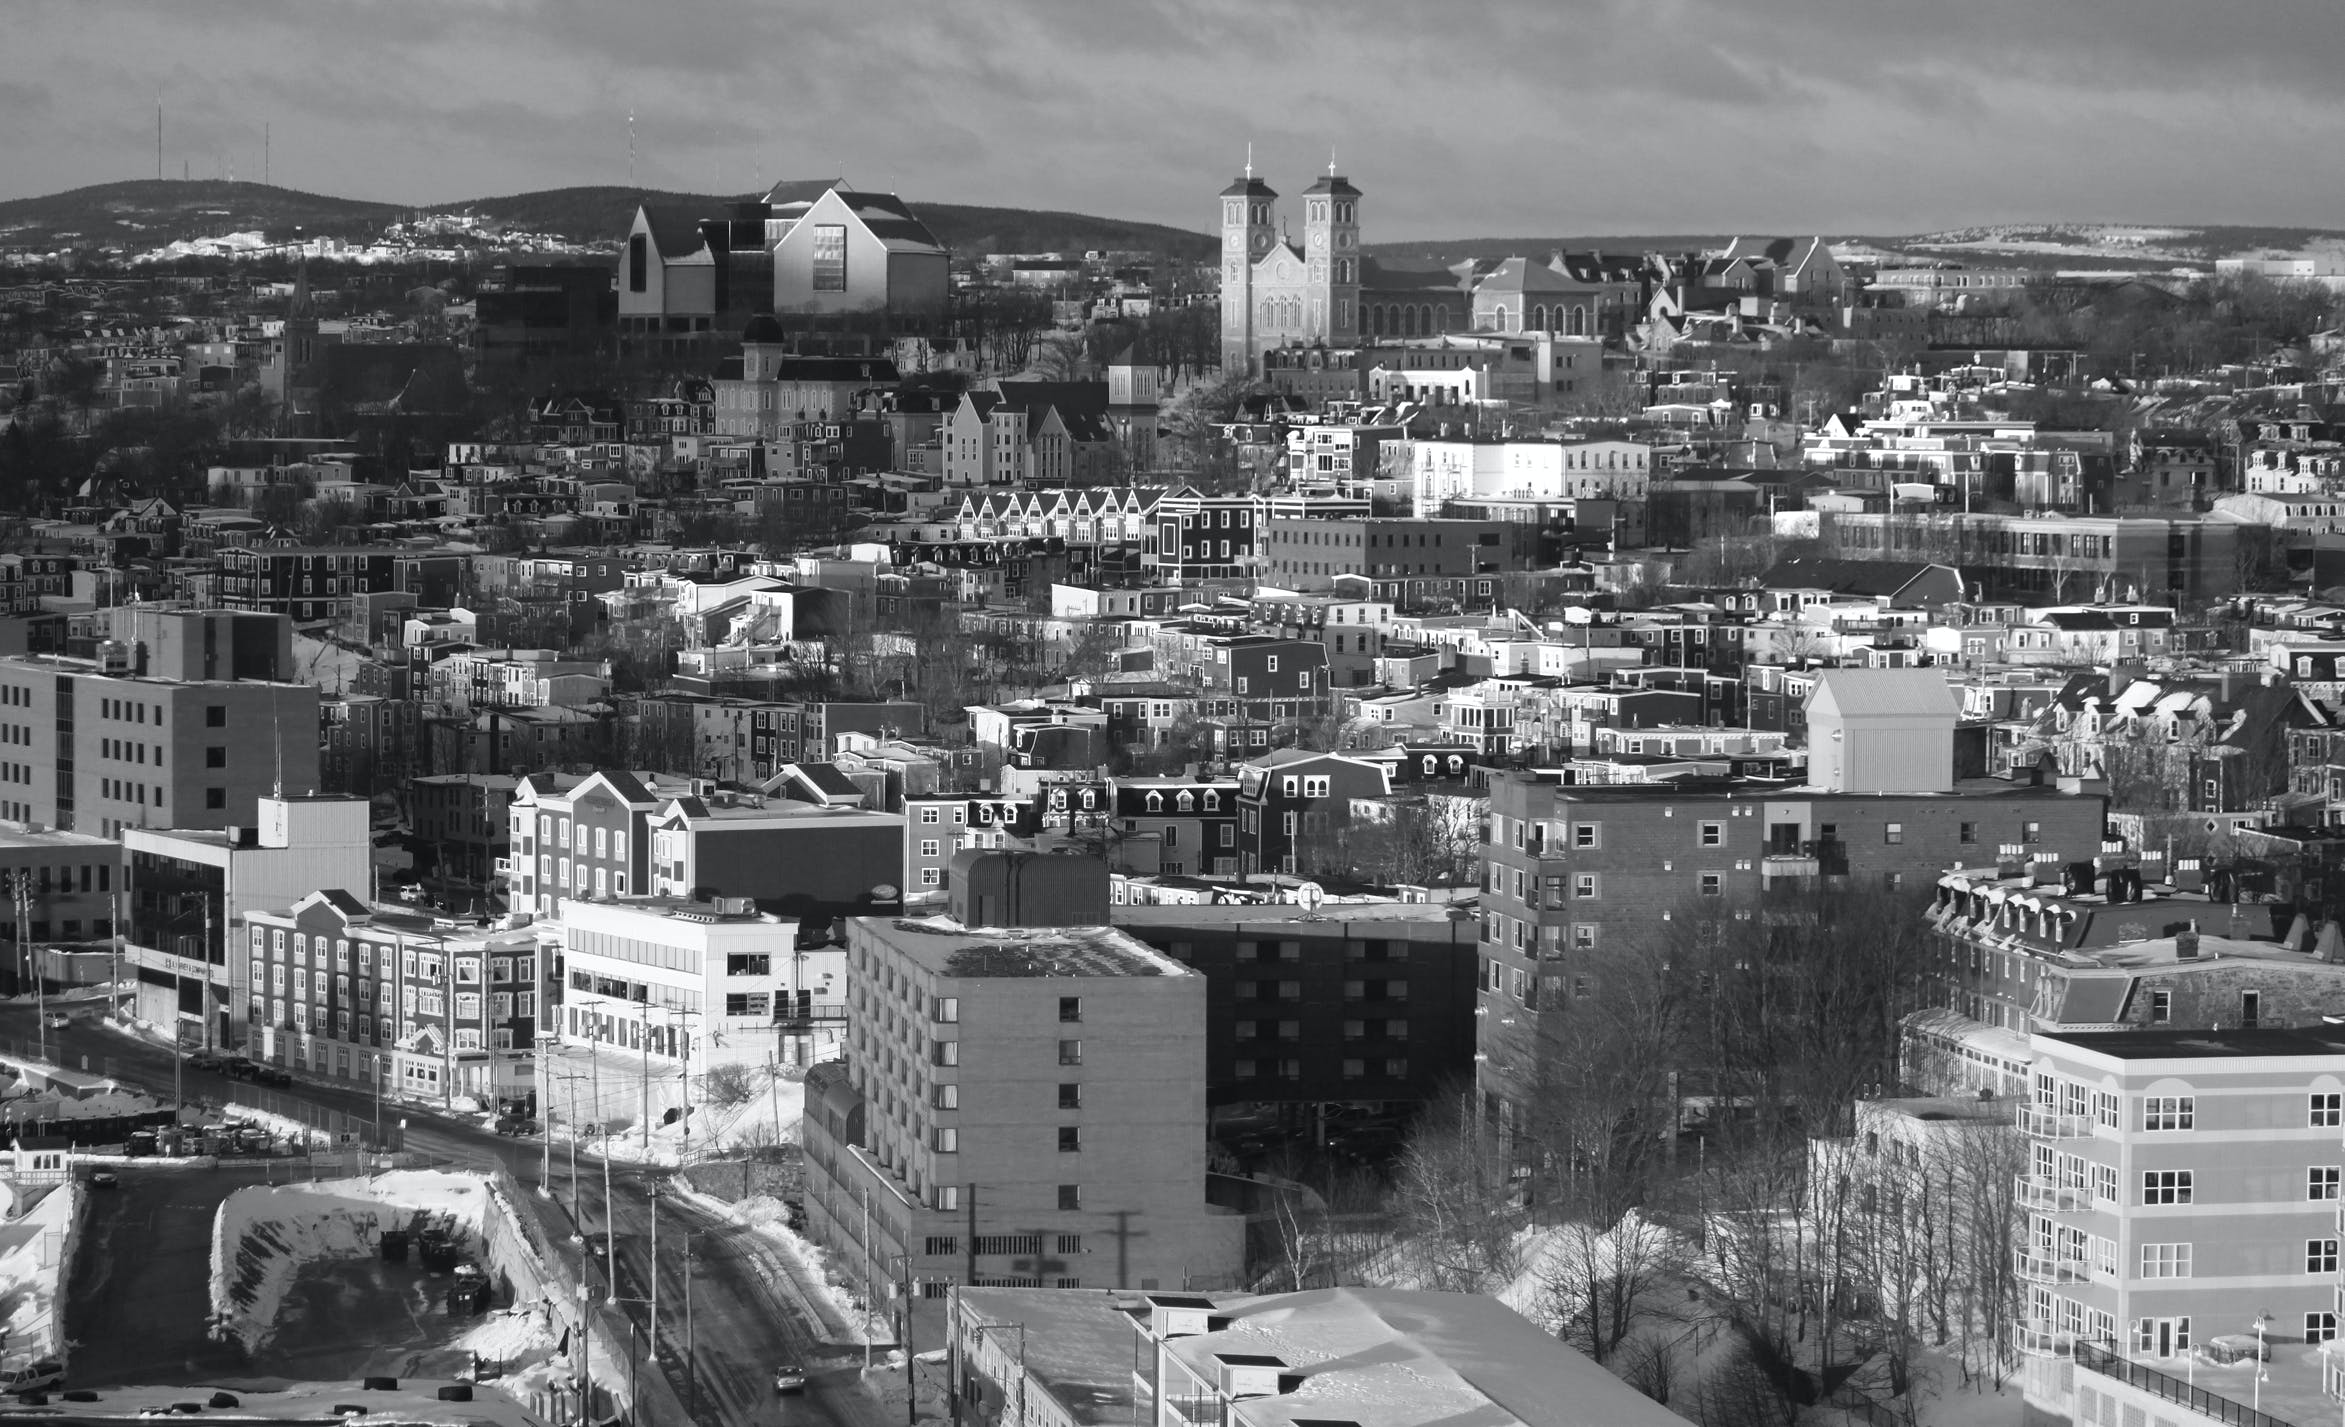 Grayscale Photo of Urban City